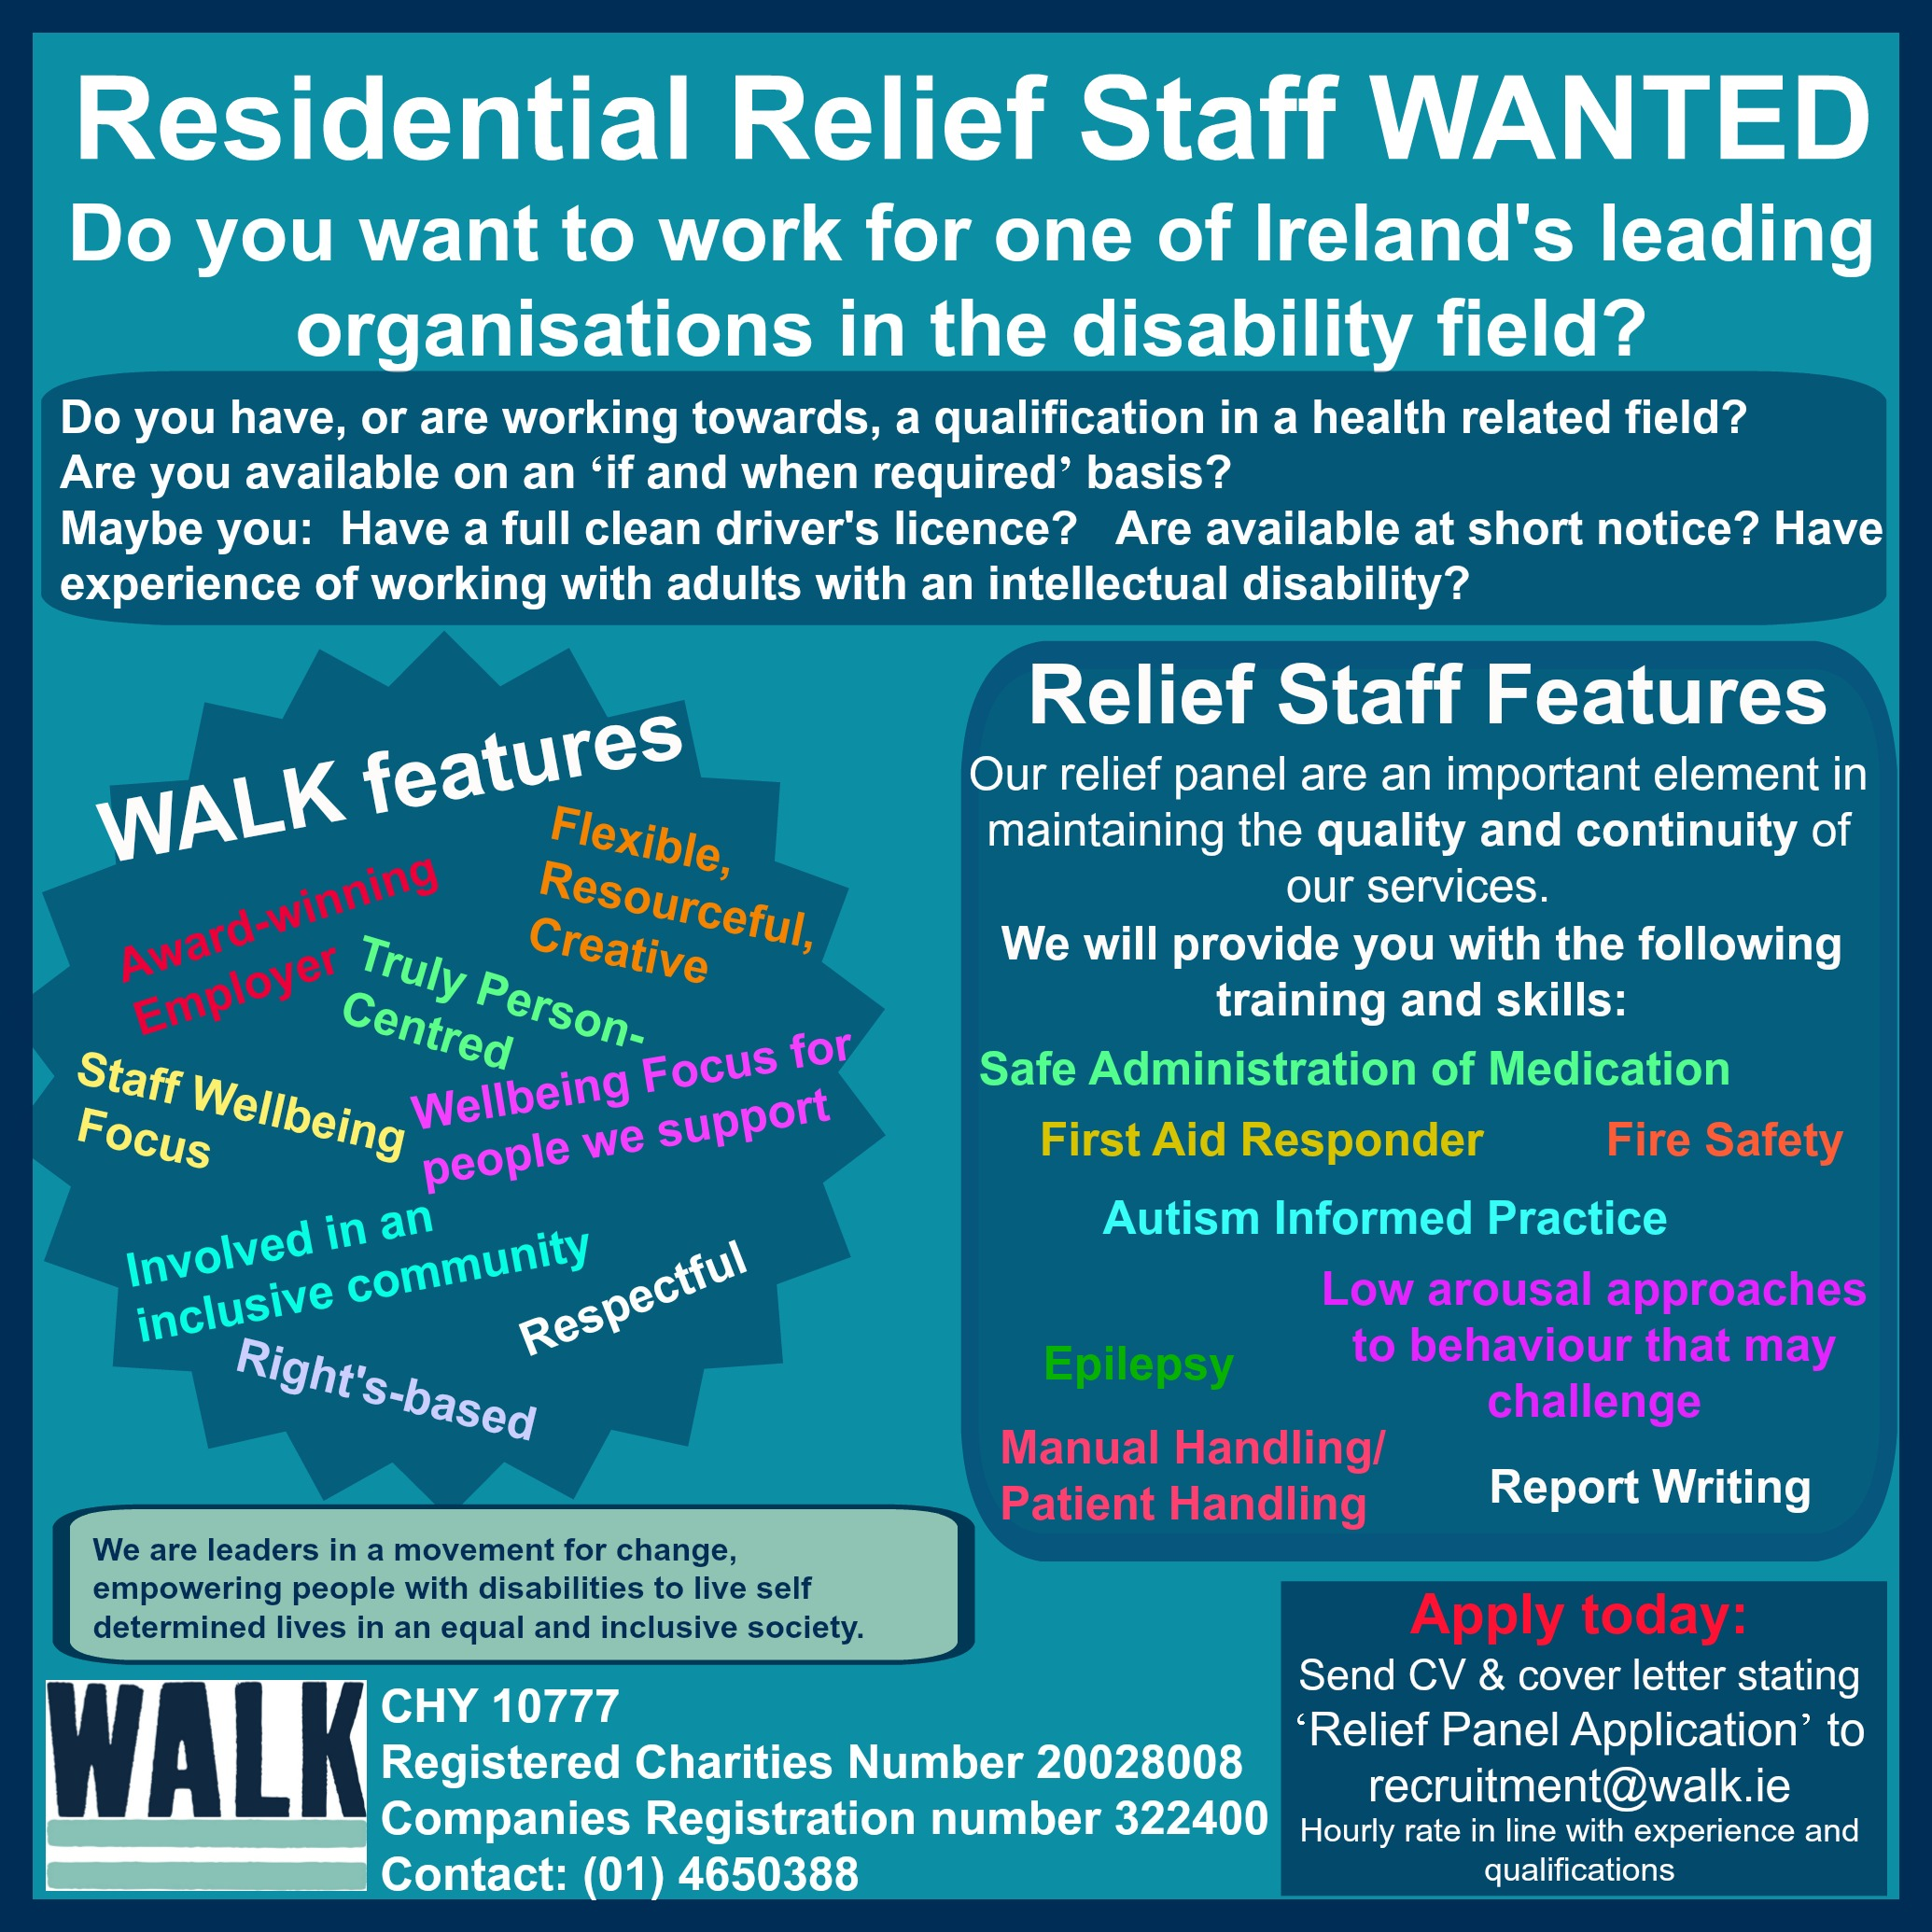 We are hiring relief staff